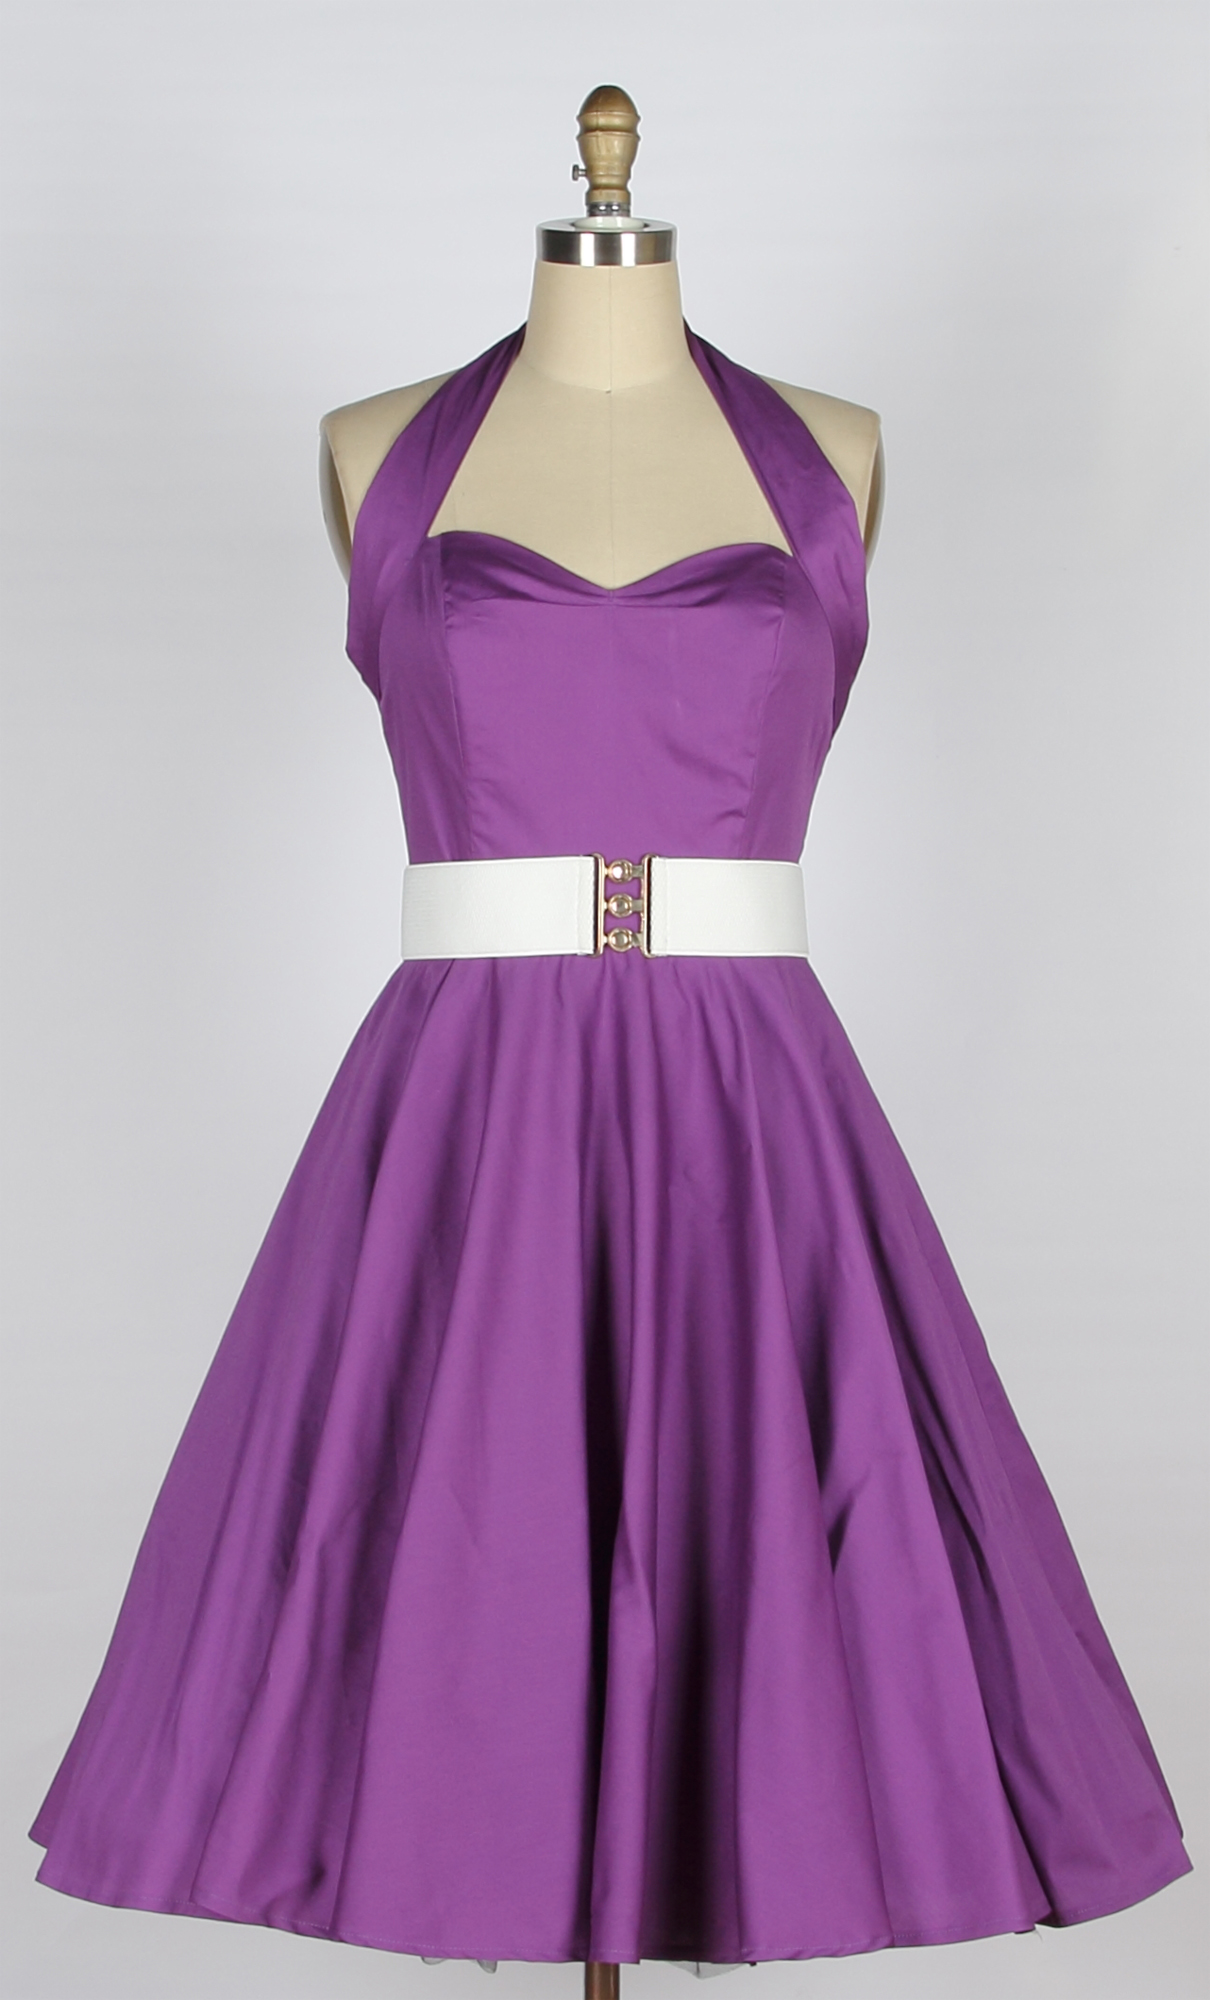 Dress: Swing Dress Picture Collection